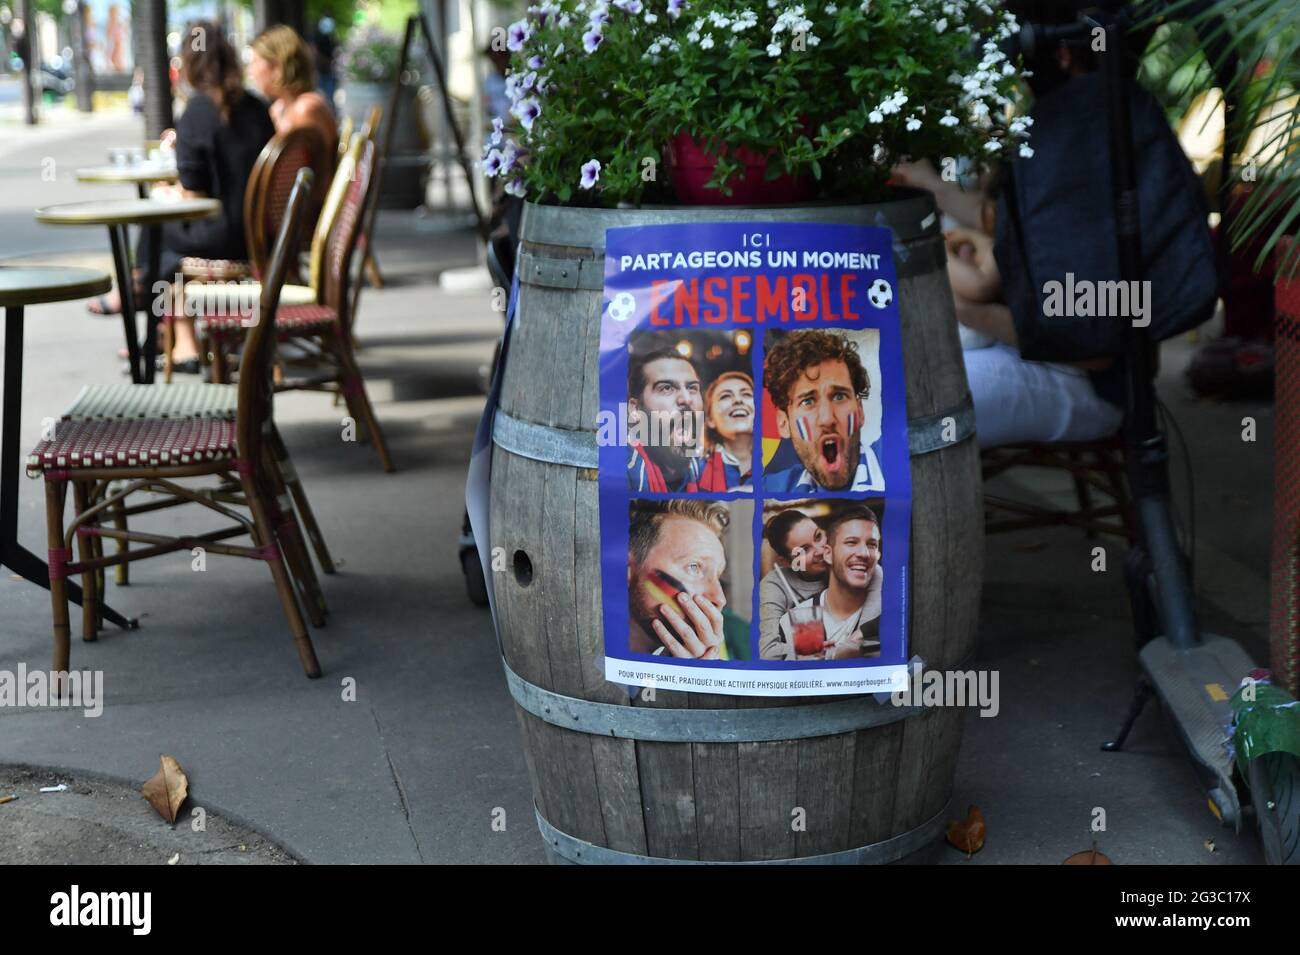 Bars prepare before France-Germany match during the EURO 2020, in Paris, France, on June 15, 2021. Photo by Karim Ait Adjedjou/Avenir Pictures/ABACAPRESS.COM Stock Photo